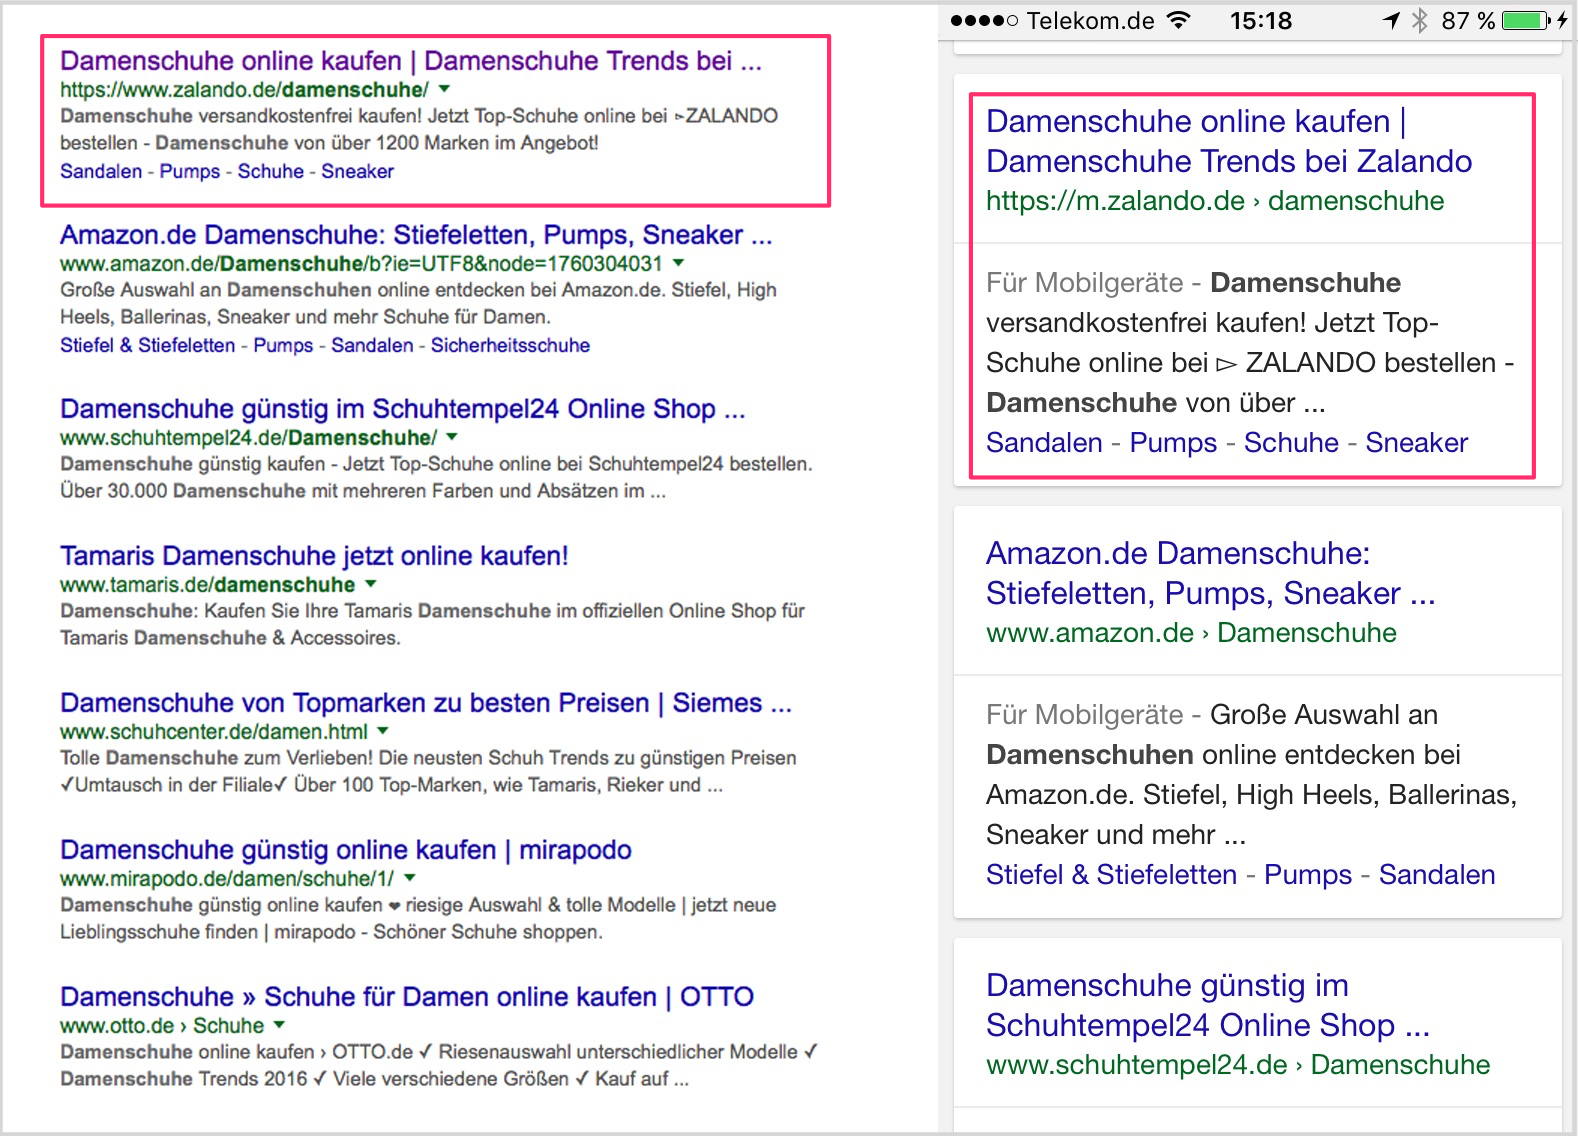 serps3 extraits enrichis SERP